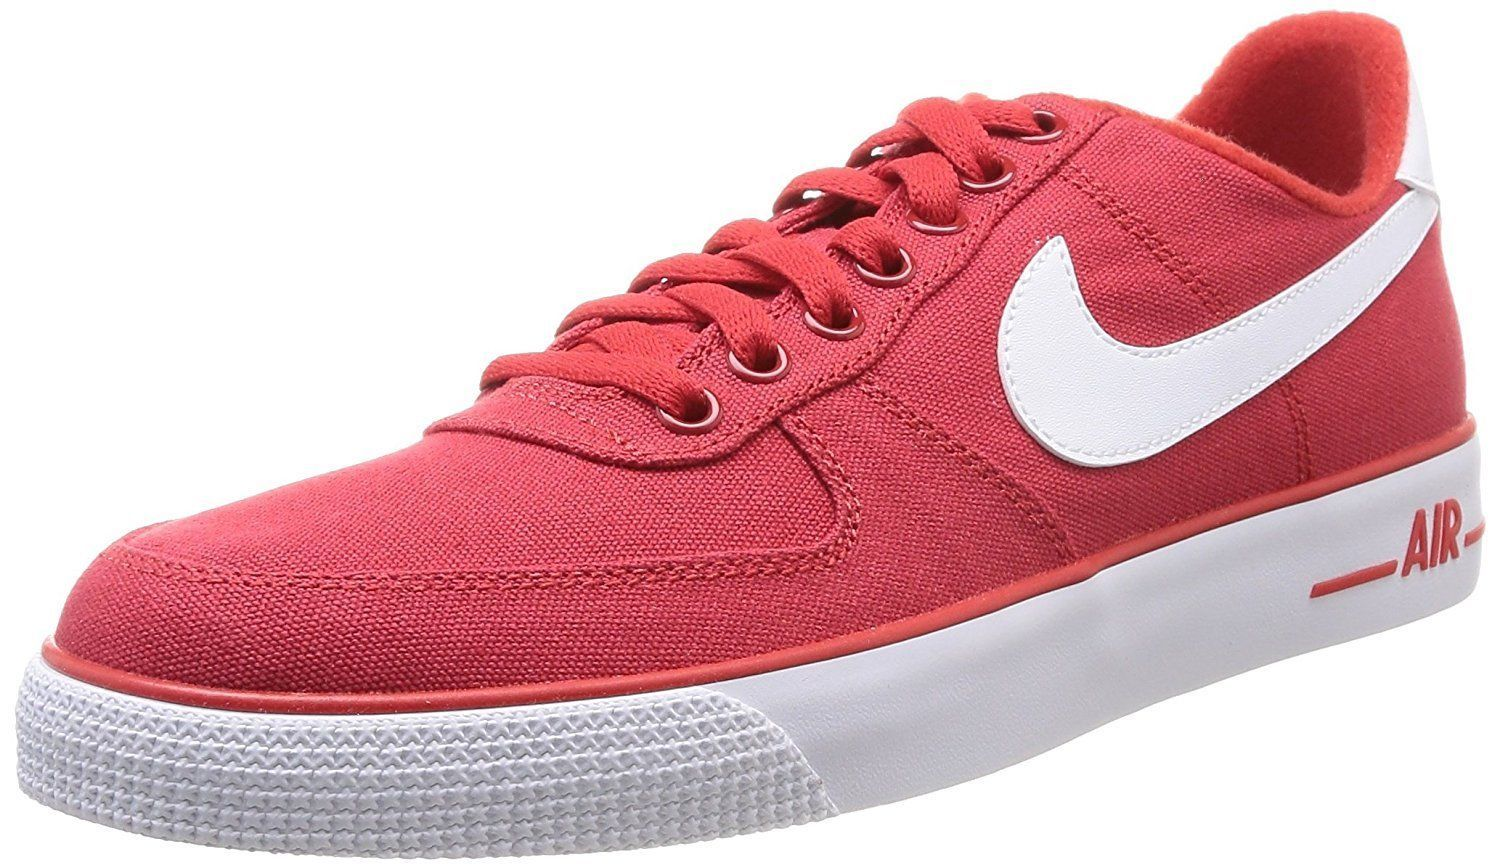 promo code 9a829 2b893 Men s Nike Air Force 1 AC Casual Shoes, and 50 similar items. 57